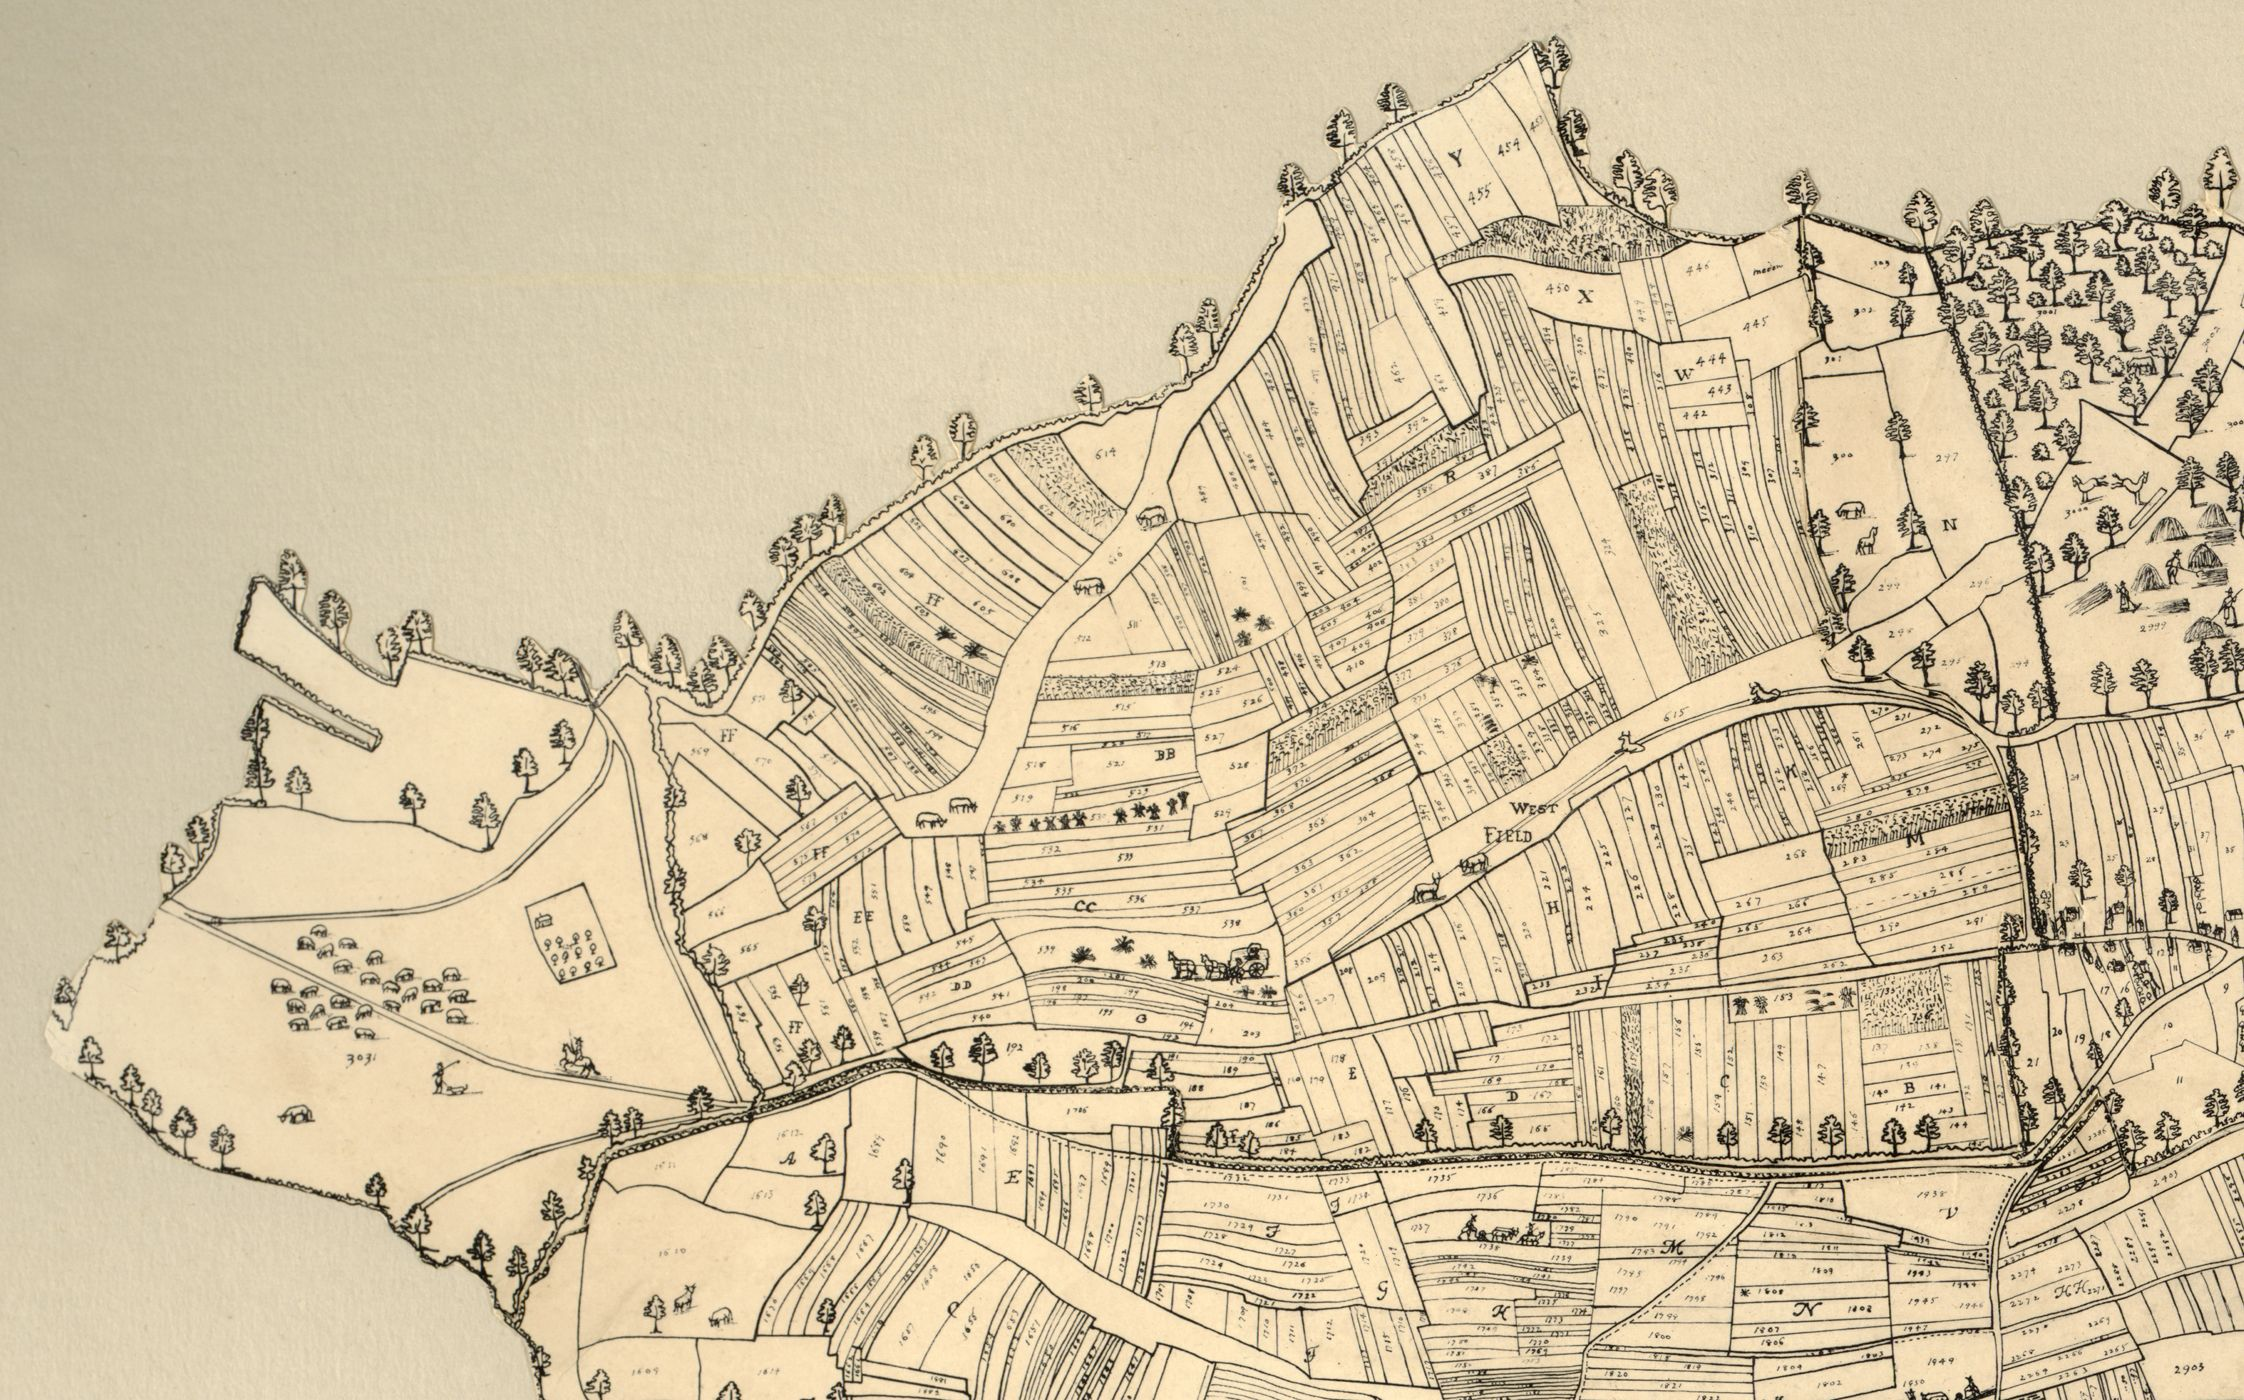 A hand-drawn map showing a complex field system, as well as settlements, roads and rivers. The fields are mostly very long and thin. Charming caricatures of farmers and travelers populate the map.